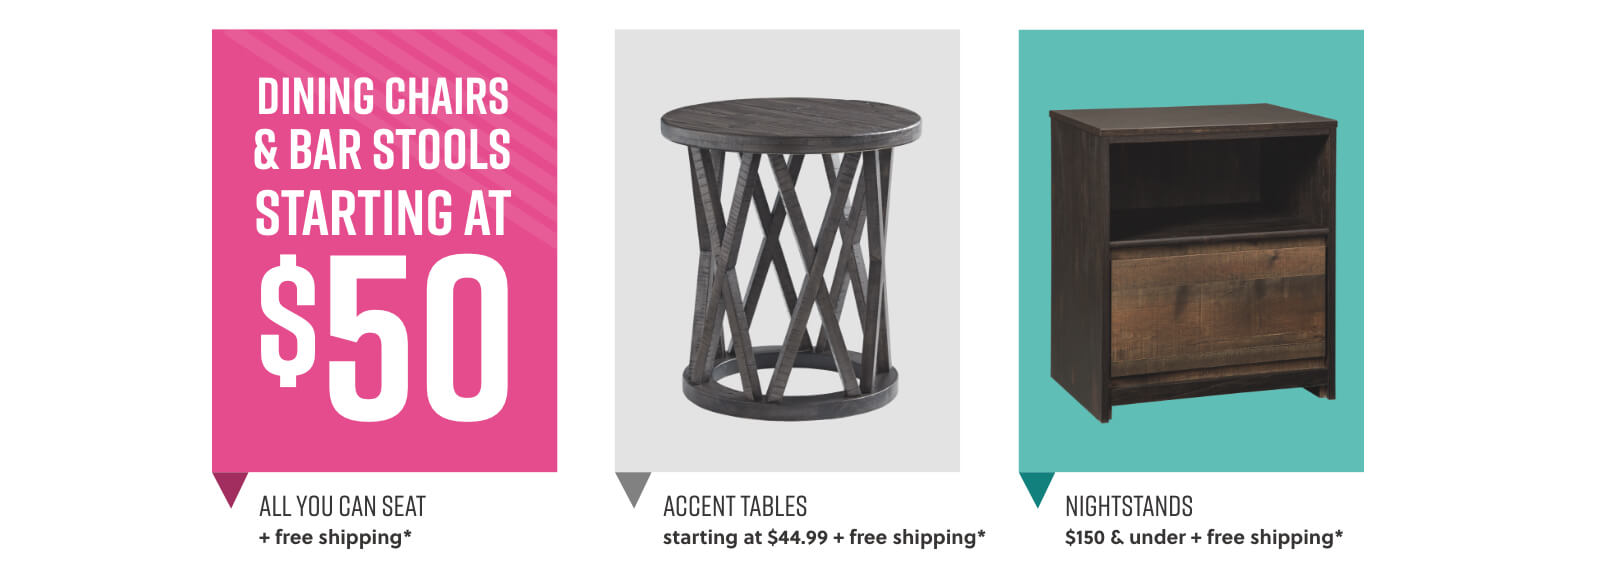 Dining Chairs, Bar Stools, Accent Tables, Nightstands